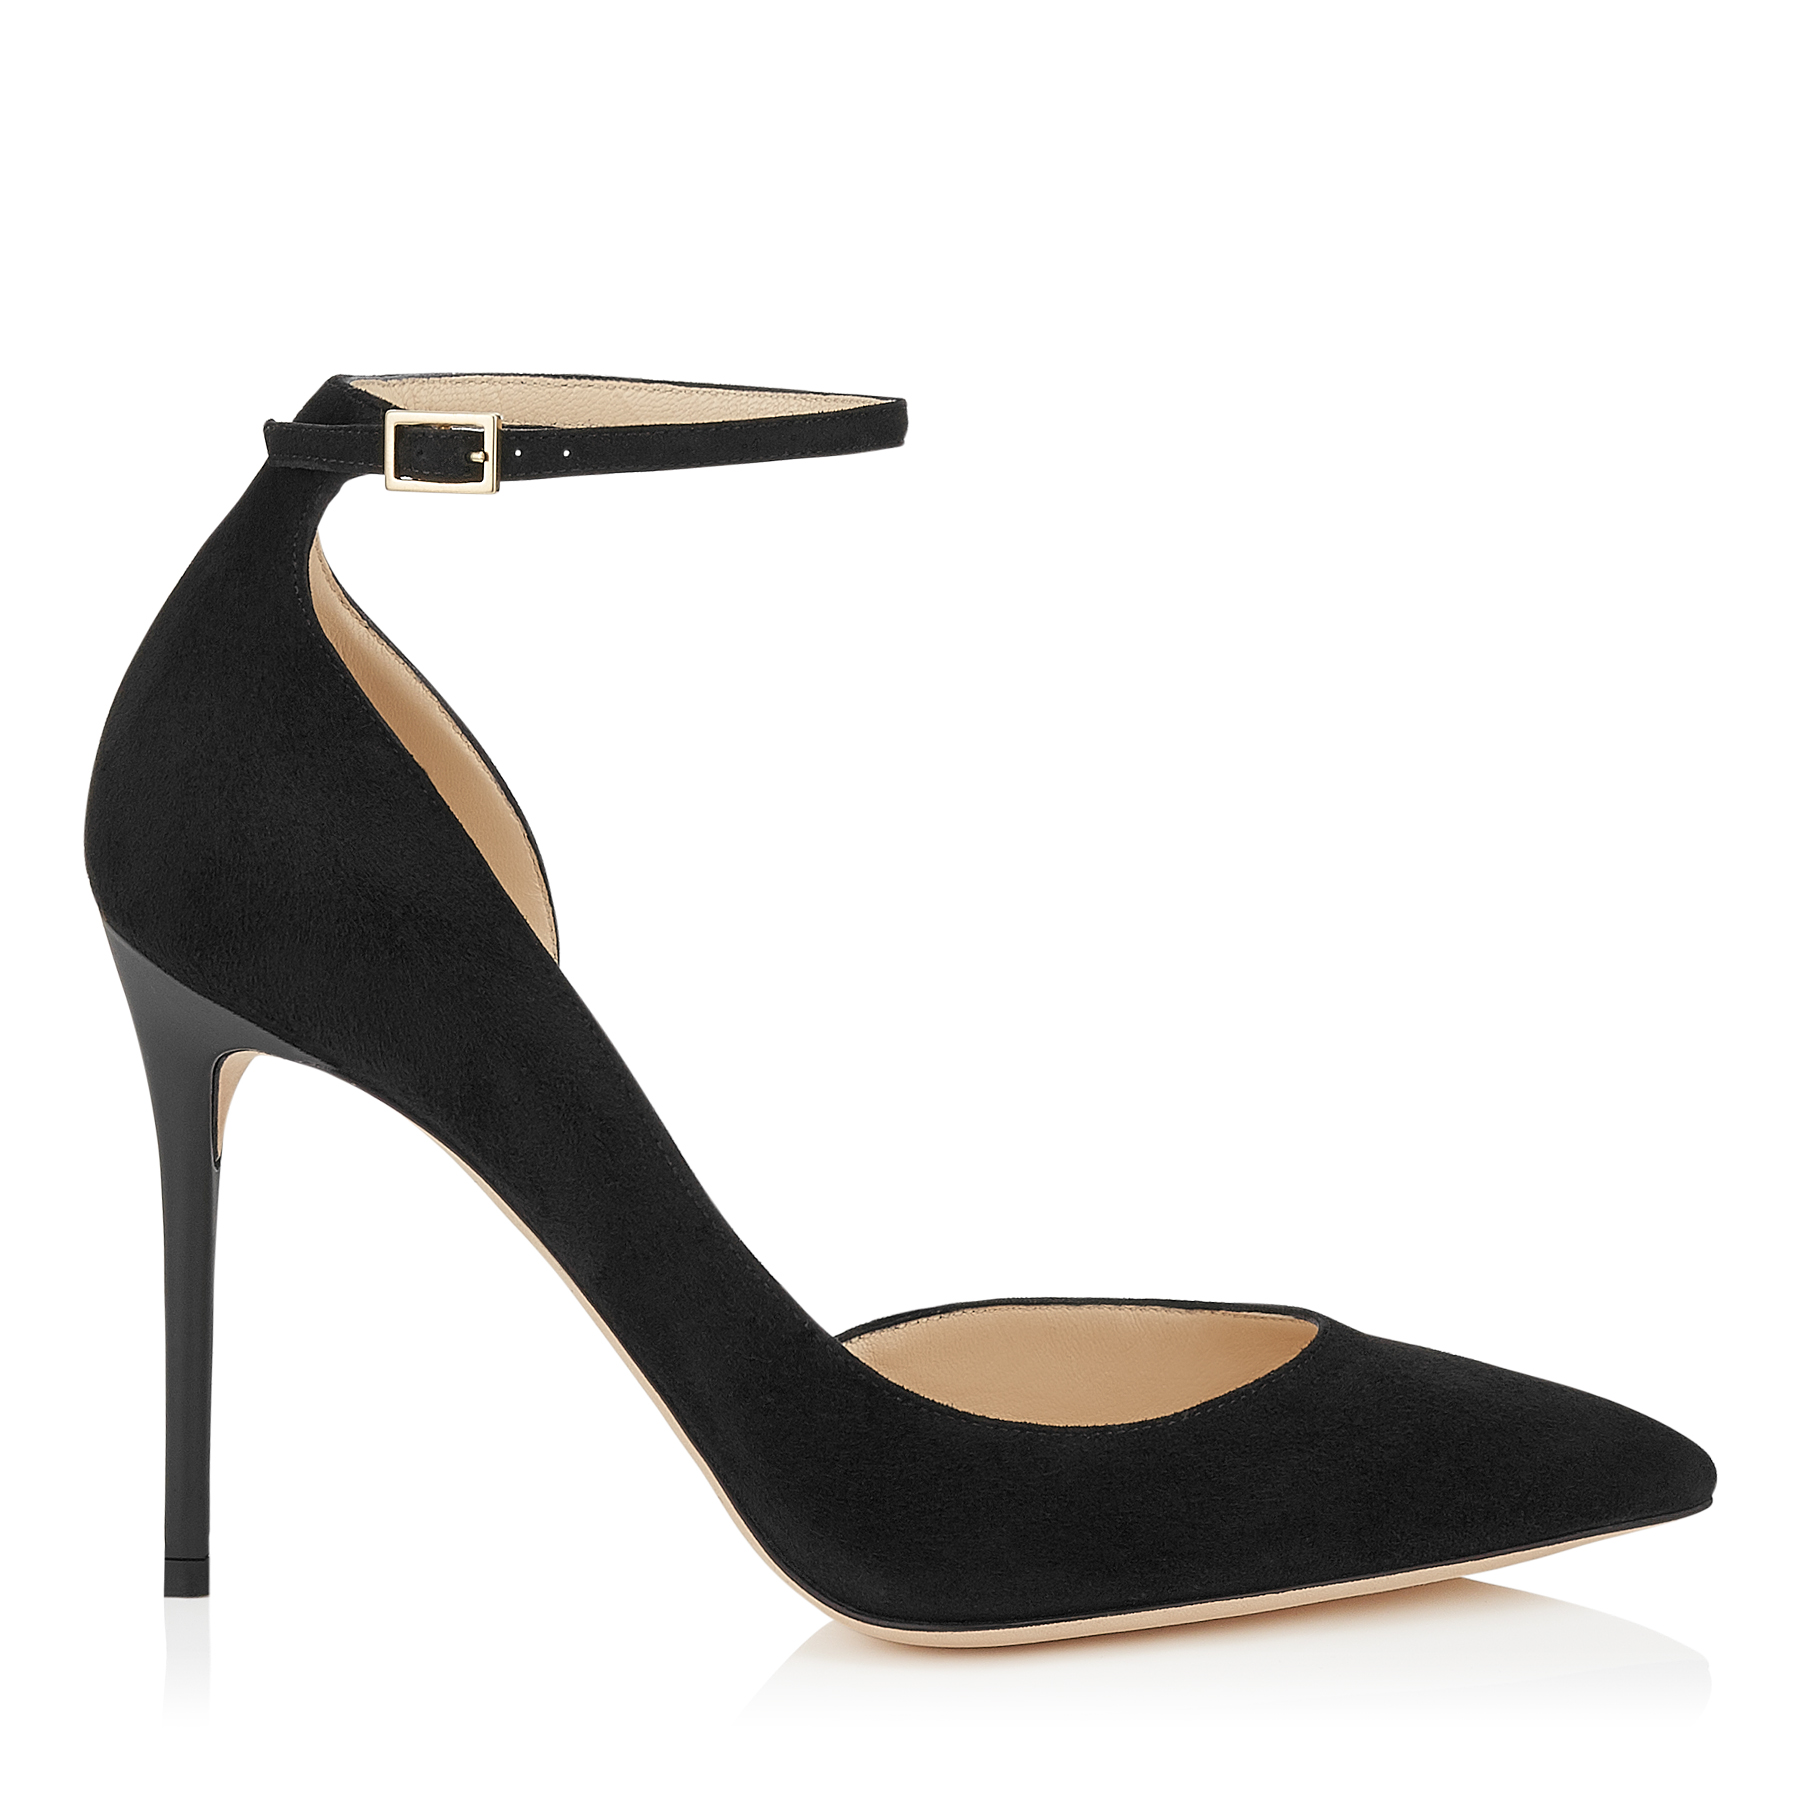 LUCY 100 Black Suede Pointy Toe Pumps by Jimmy Choo